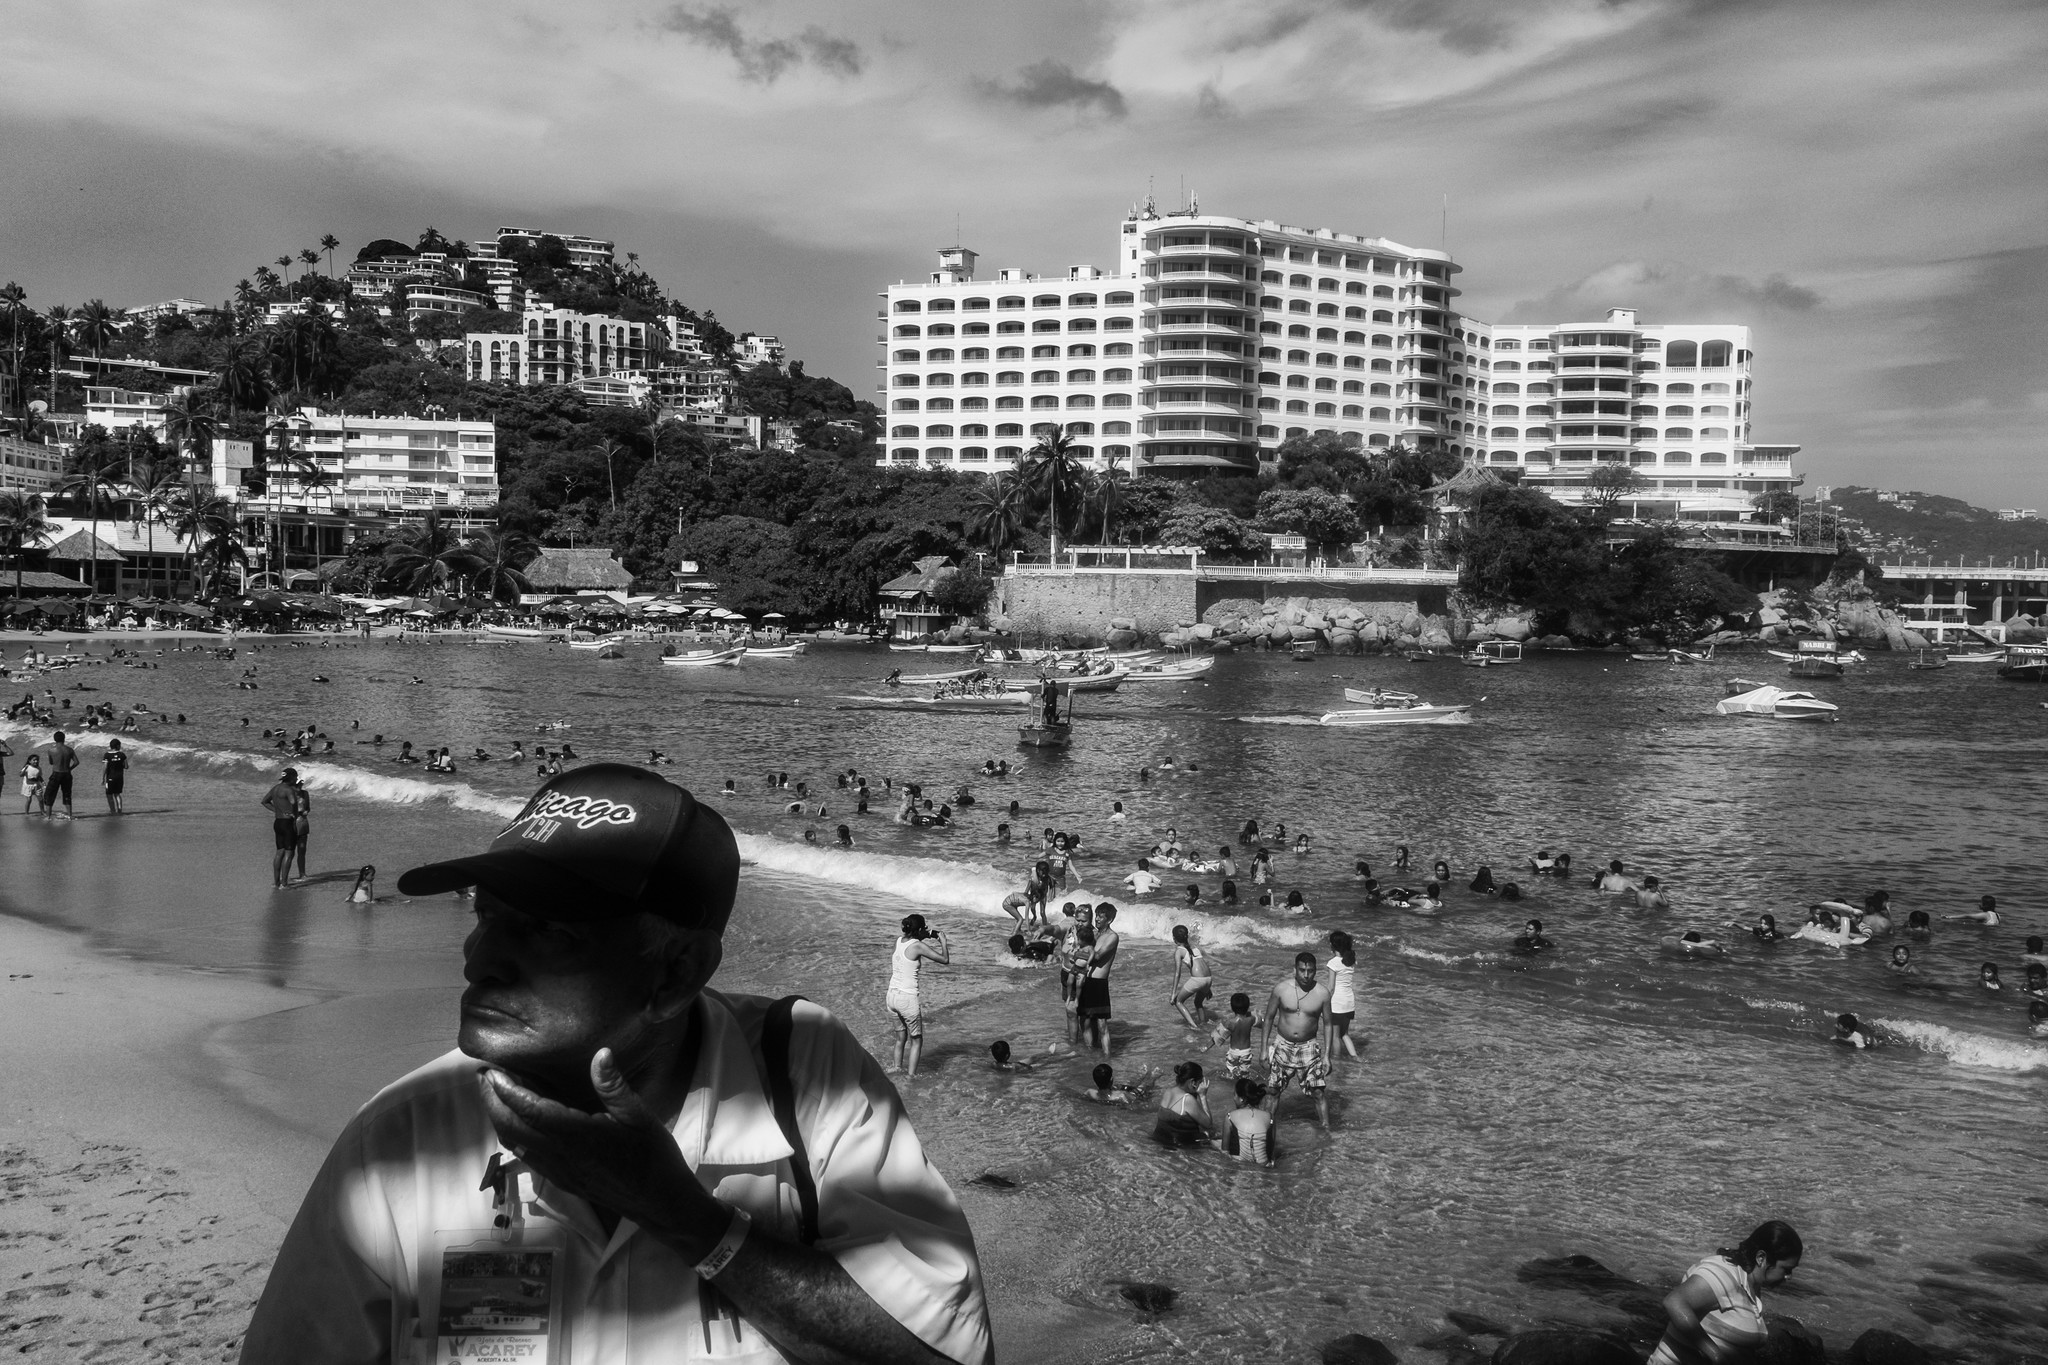 Capital City Auto >> Acapulco, once Mexico's glamorous resort city, is now its ...